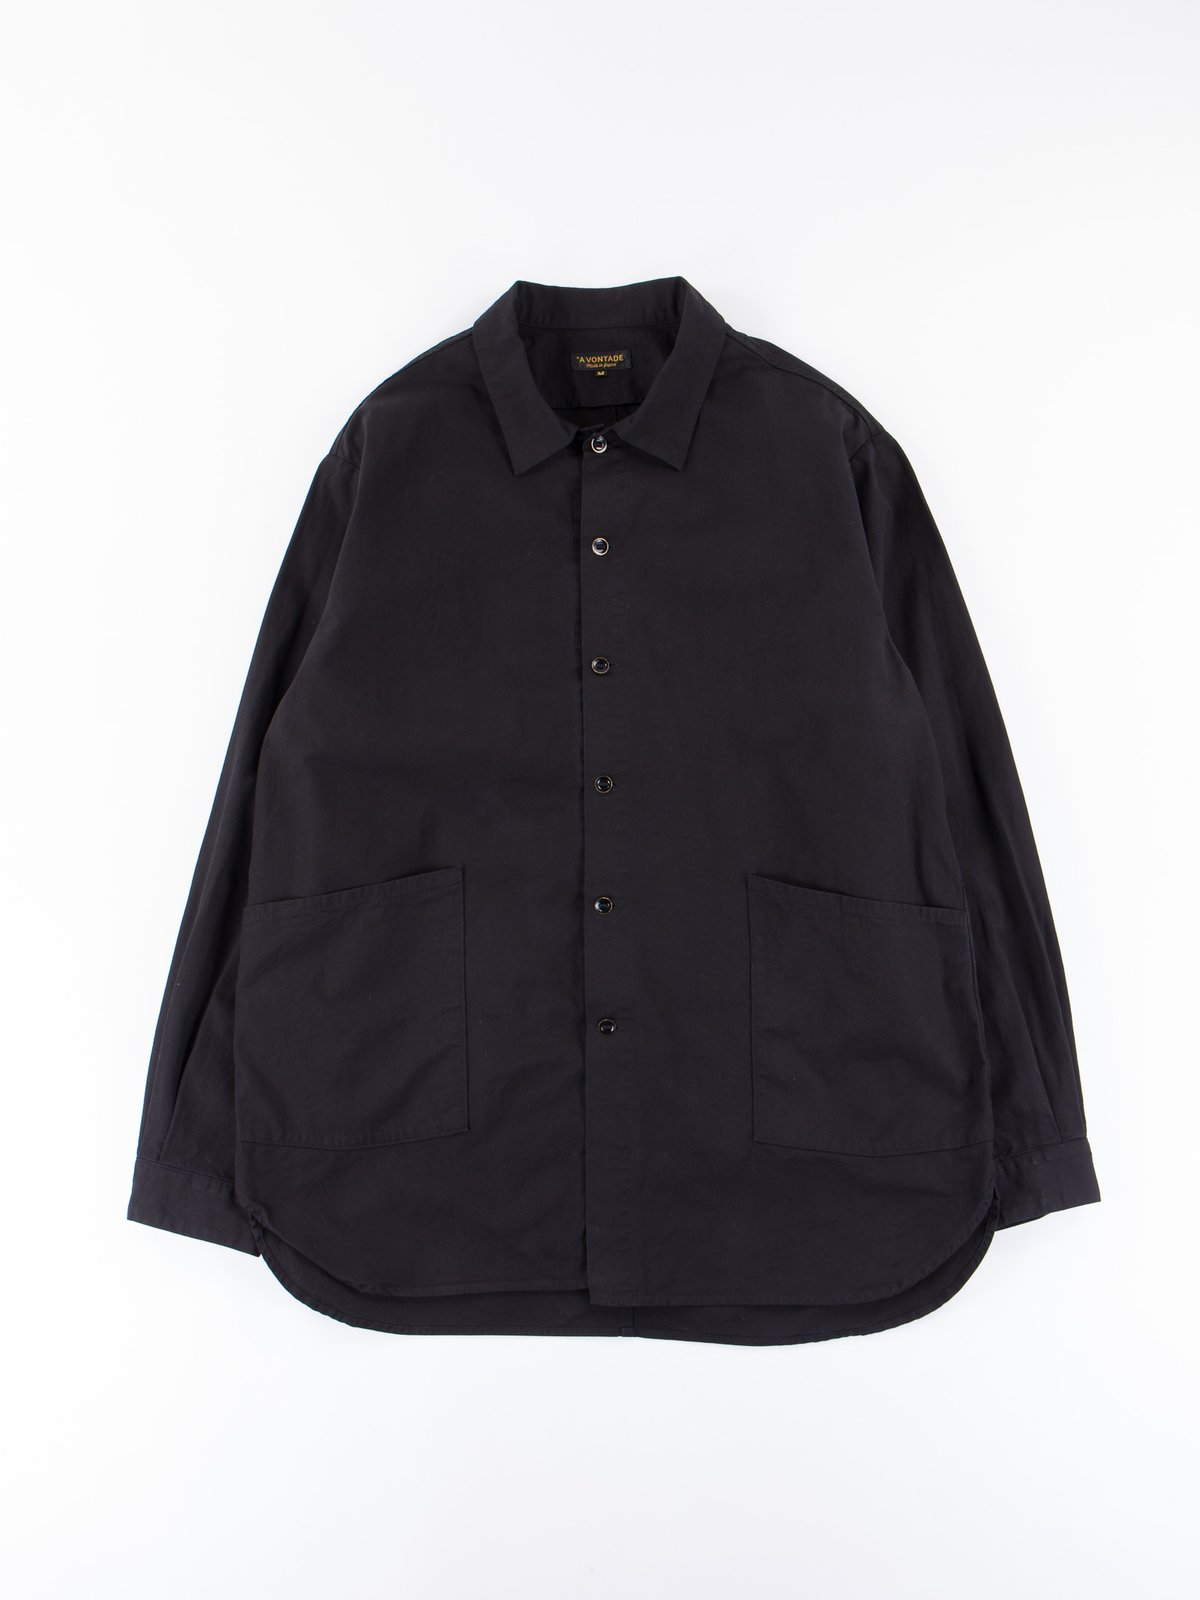 Black Gardener Shirt Jacket - Image 1